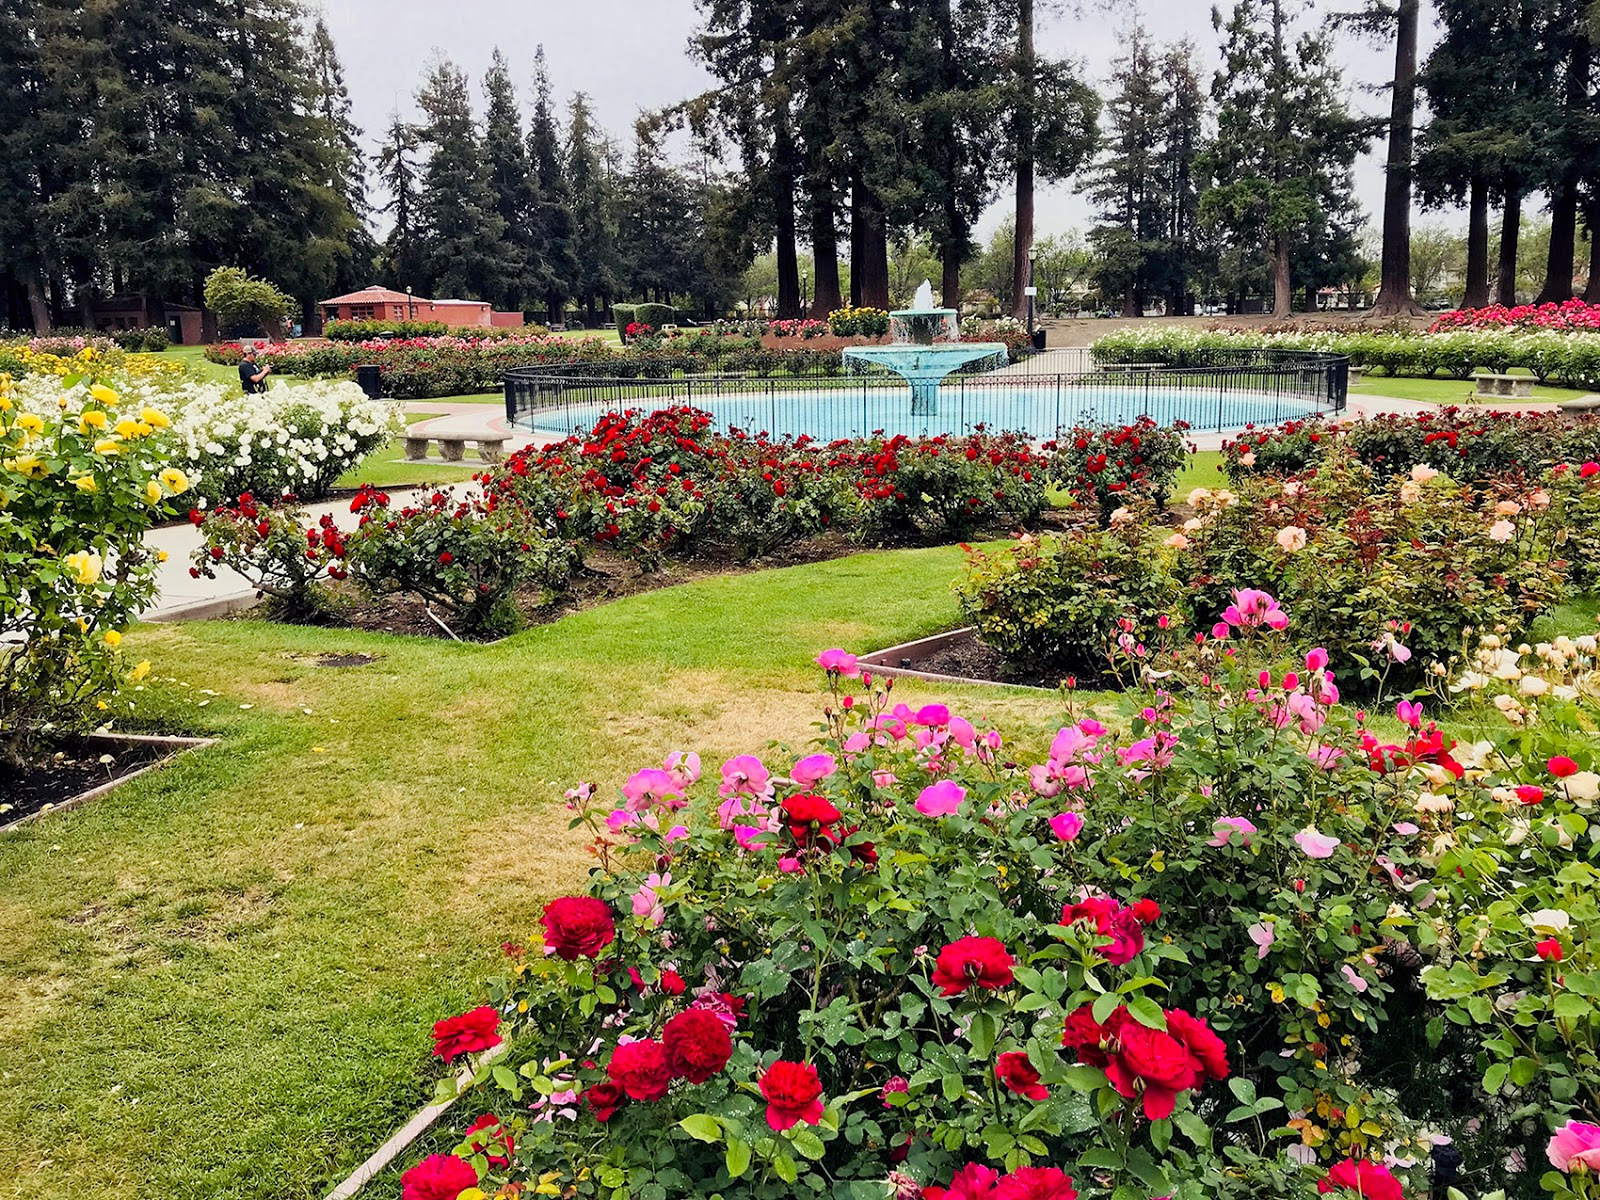 Roses In Garden: Paintsites Blog: San Jose Municipal Rose Garden, Thursday